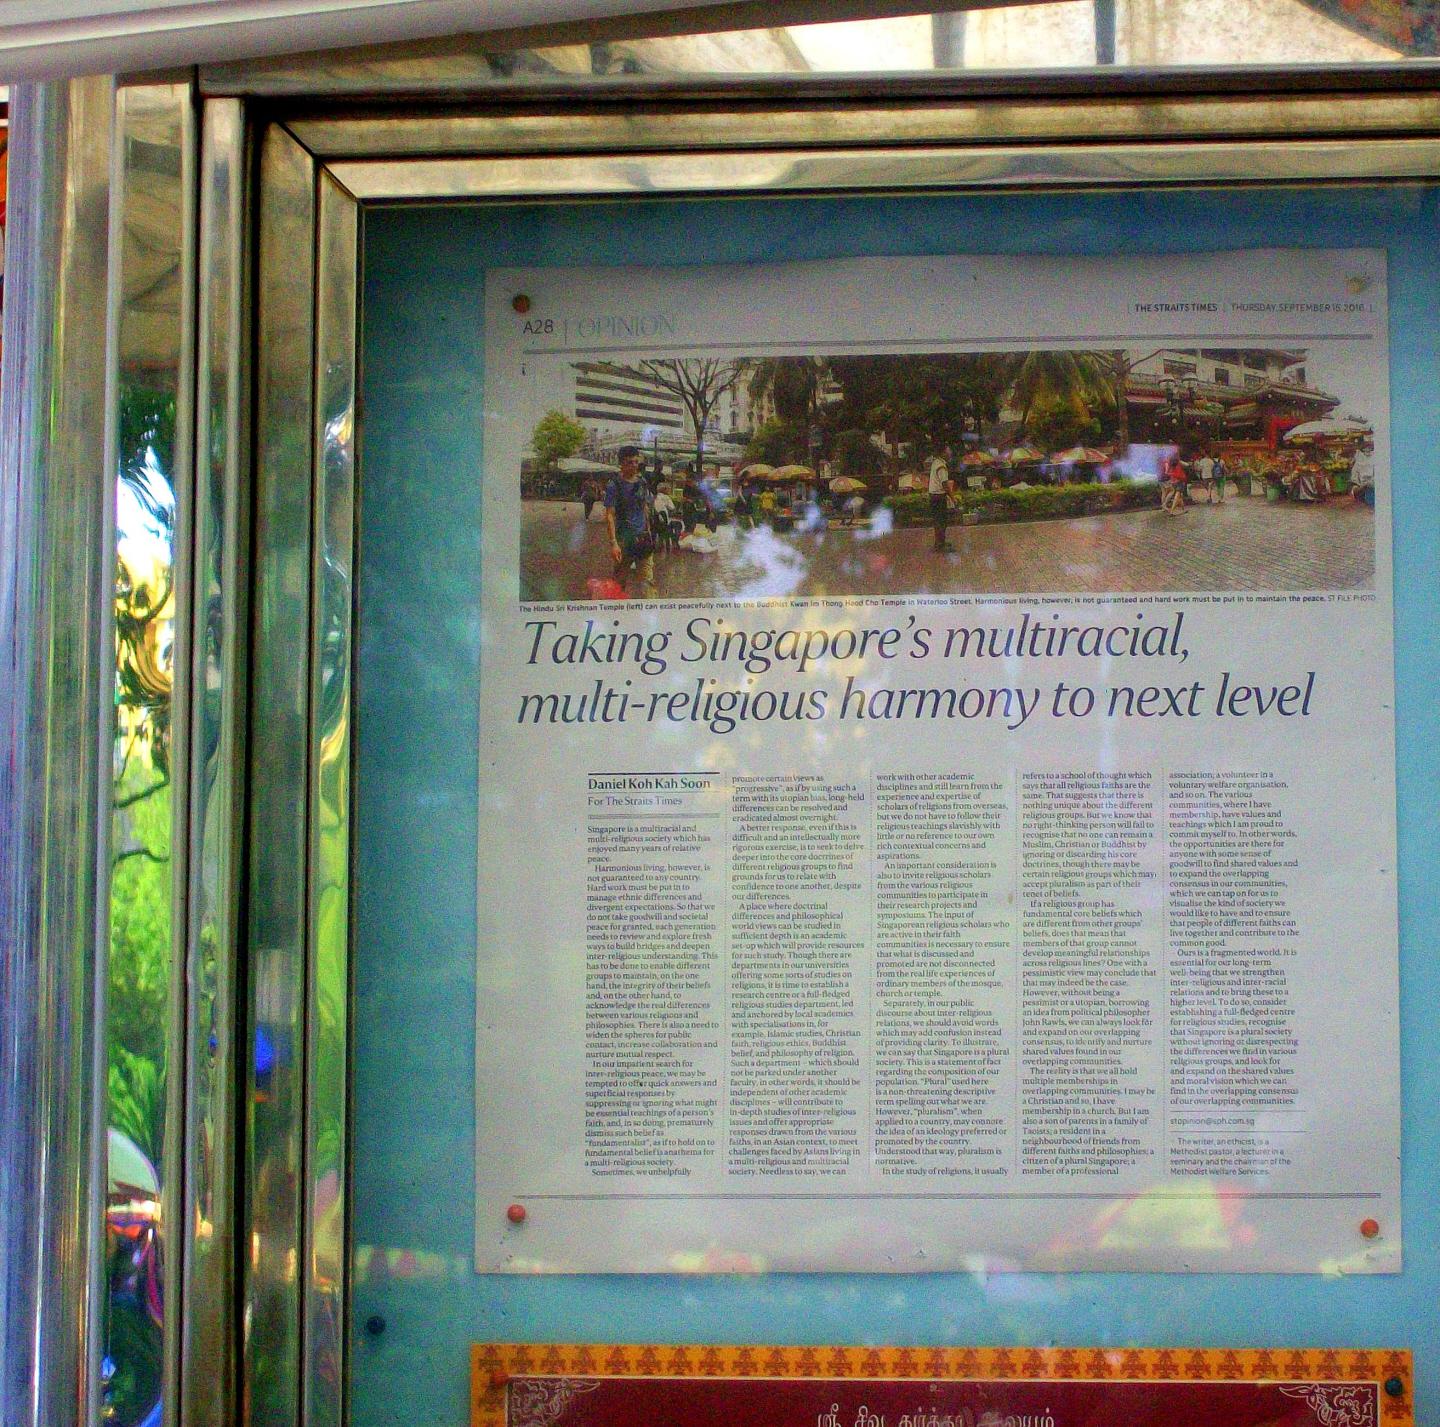 Article by Methodist Minister in front of Sri Krishna Hindu Temple